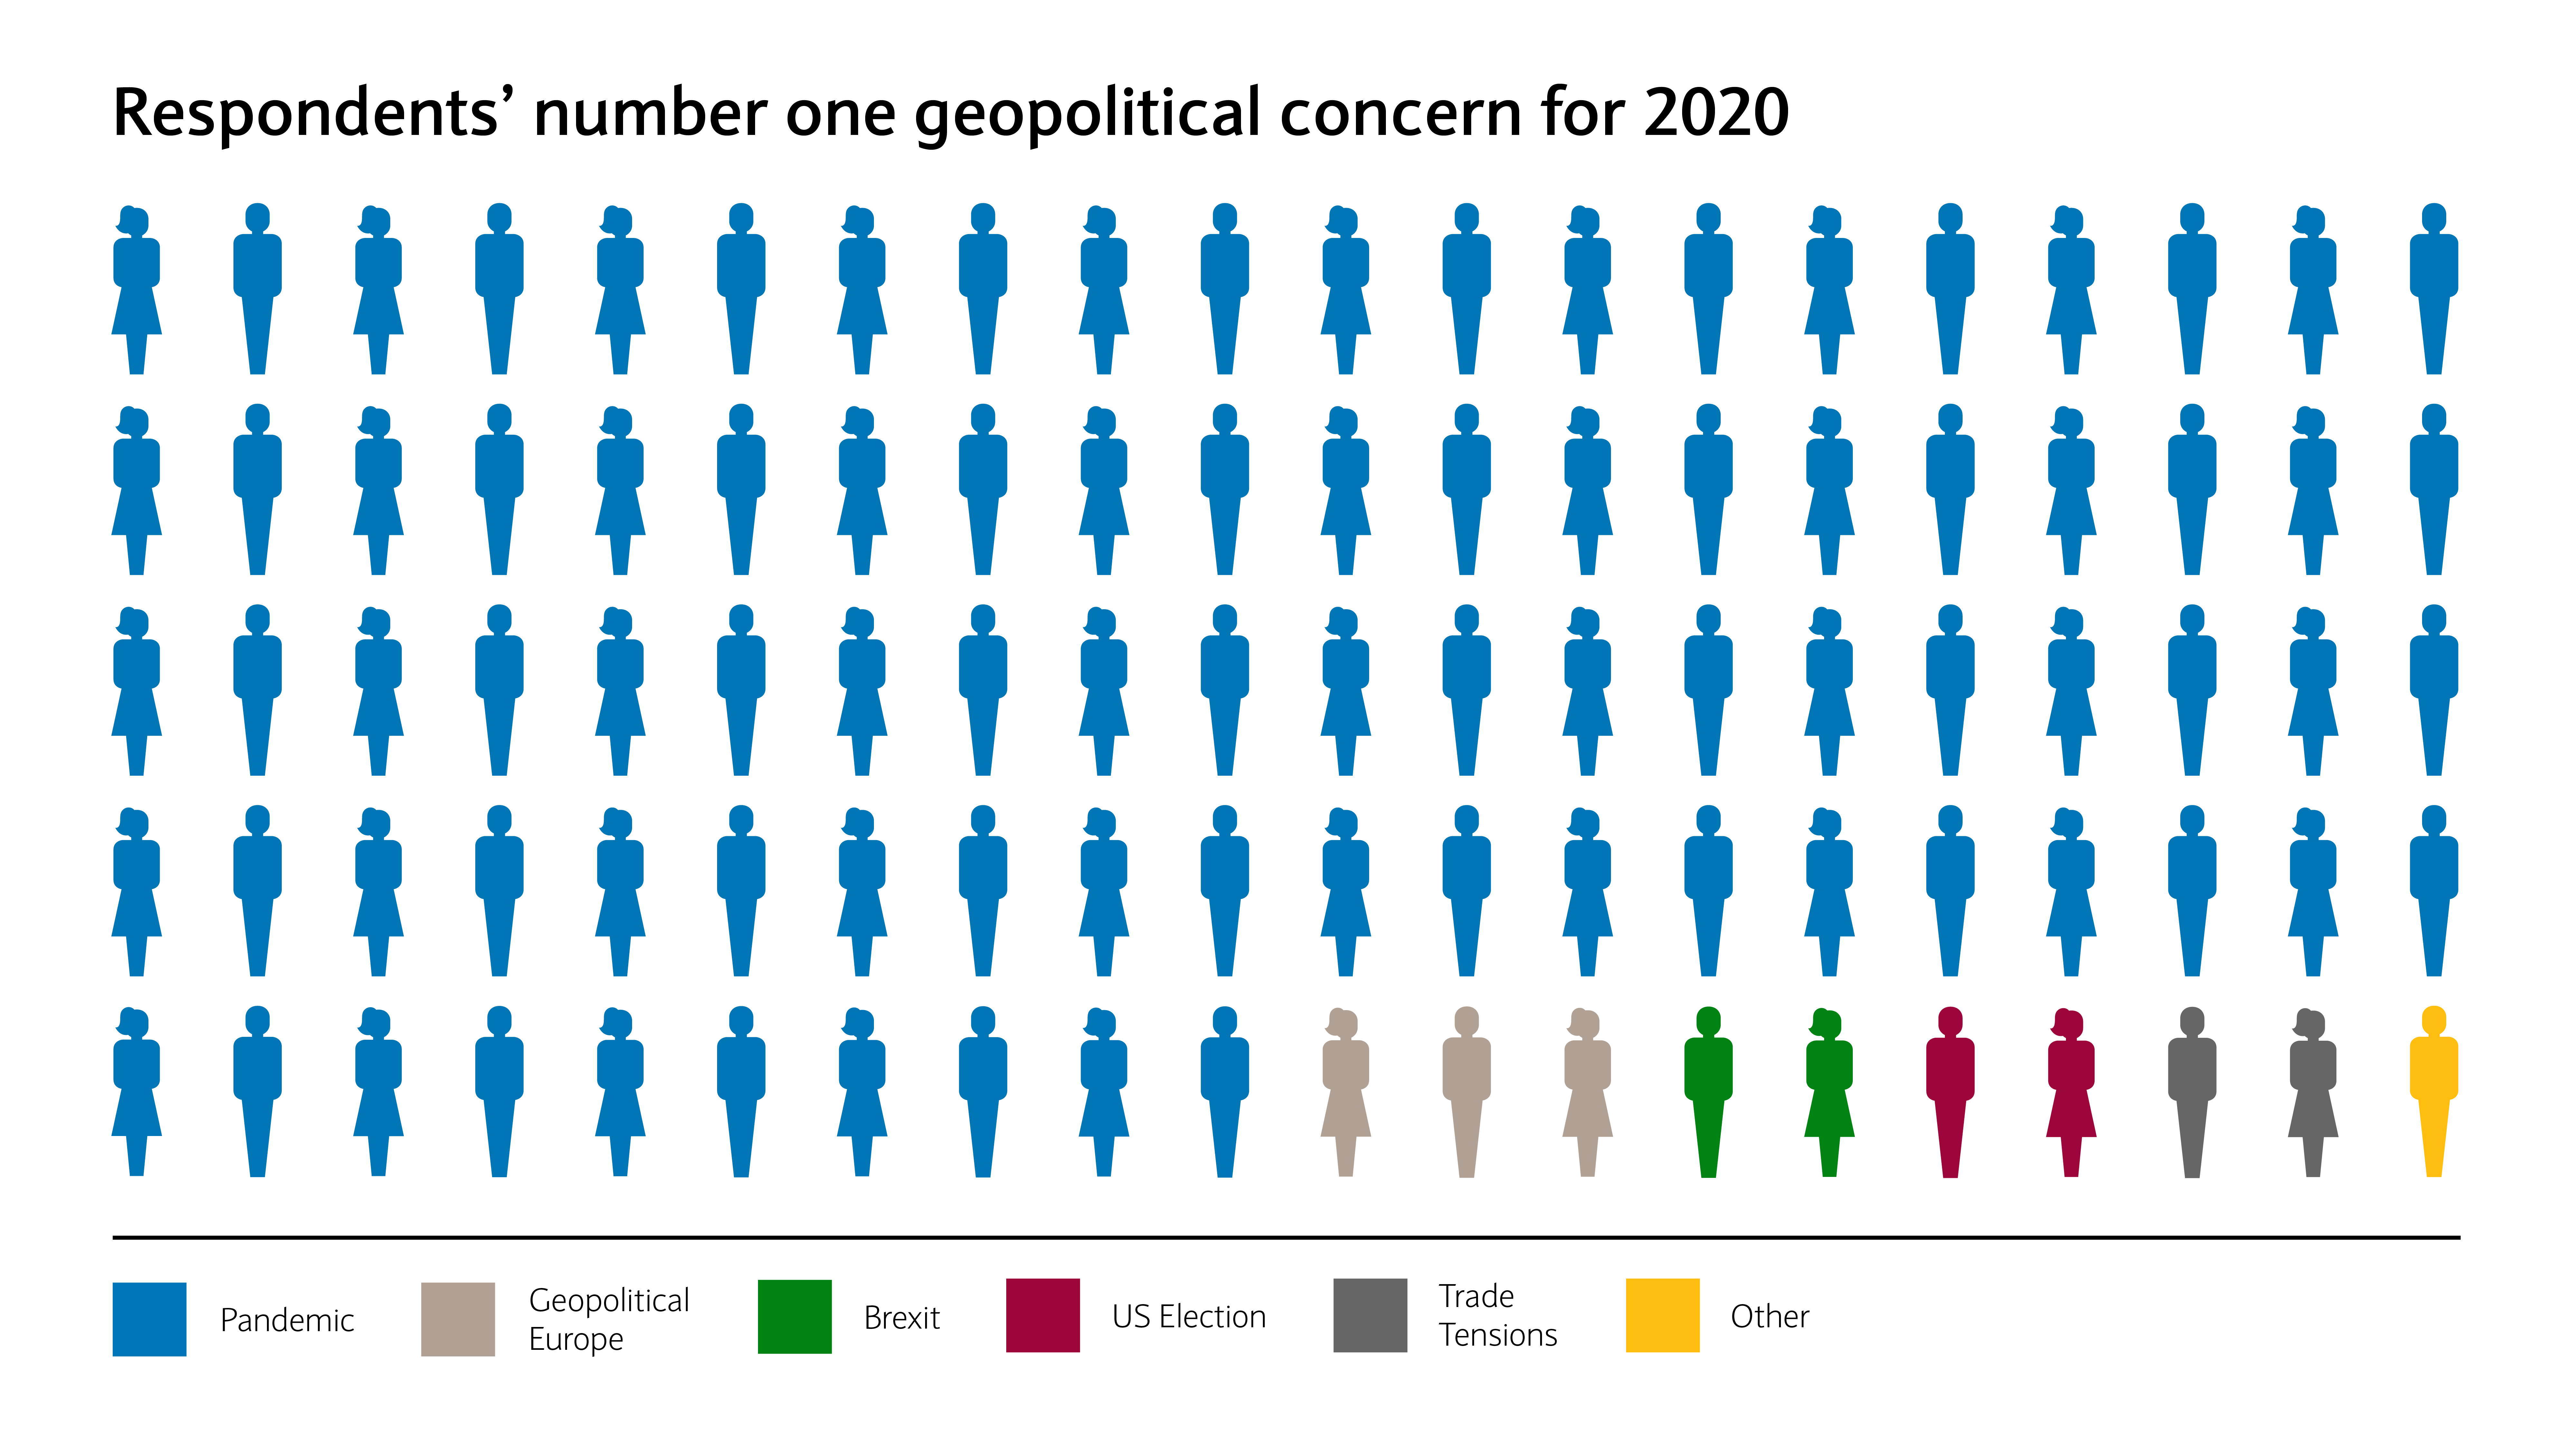 Respondents' number one geopolitical concern for 2020